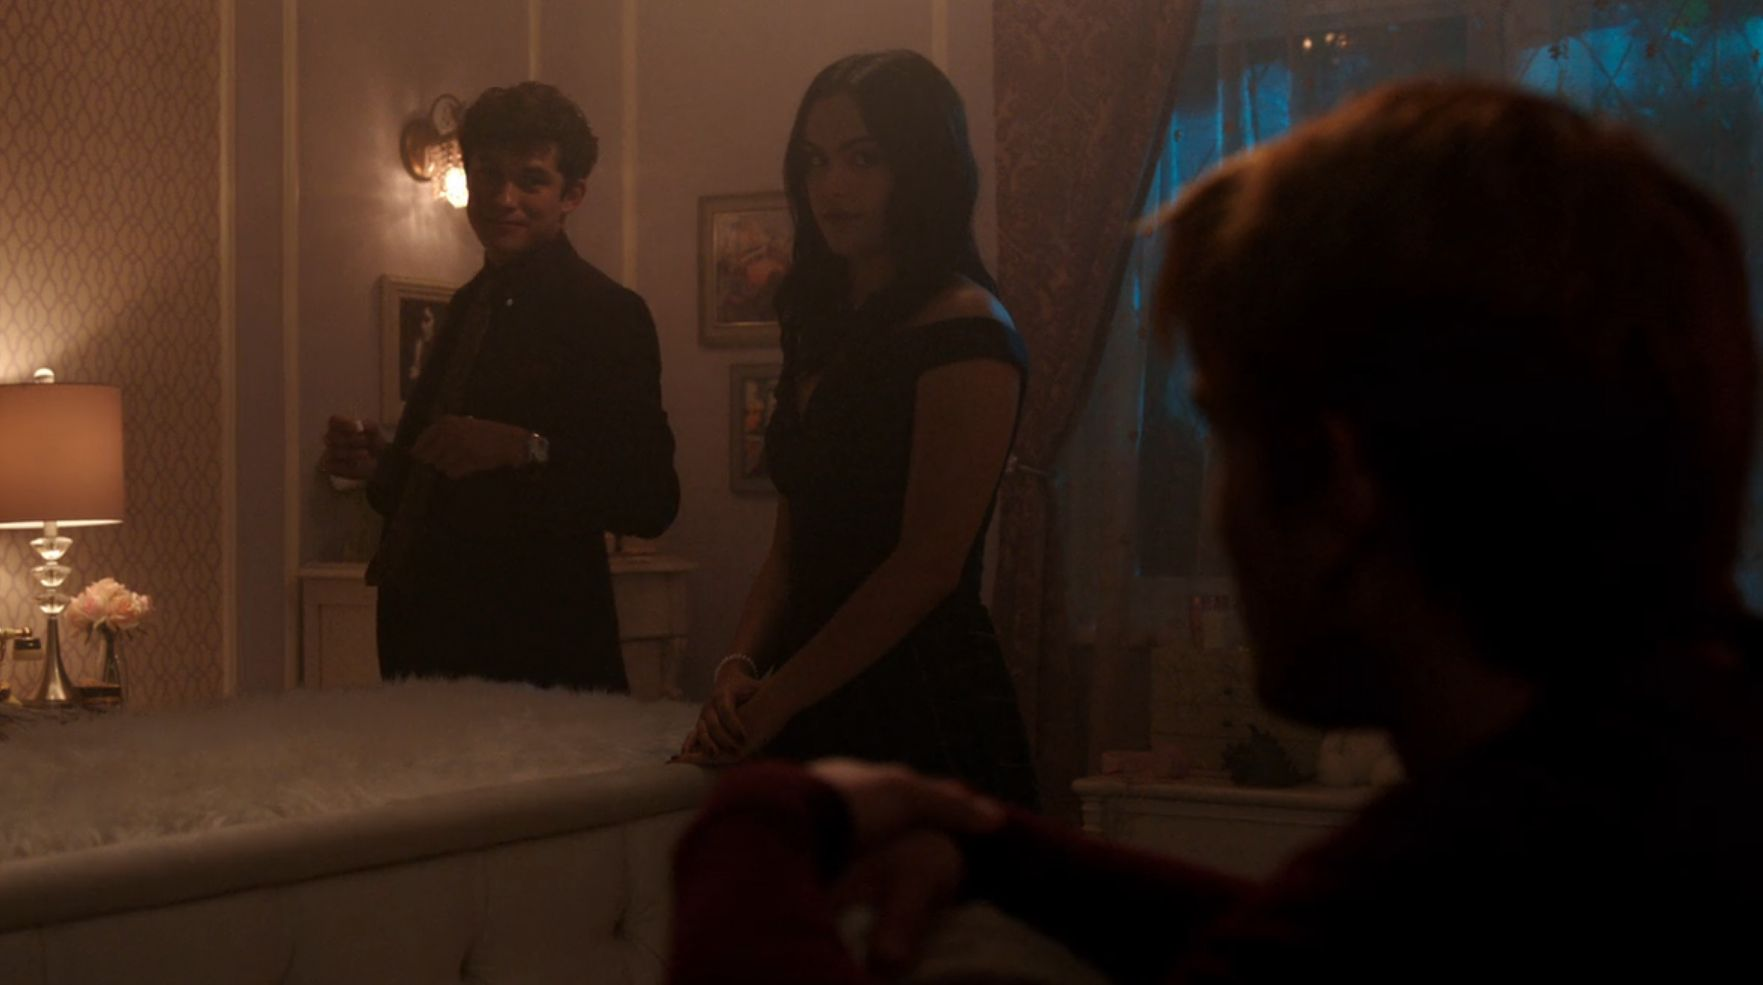 Nick, Veronica and Archie (CW / Riverdale)